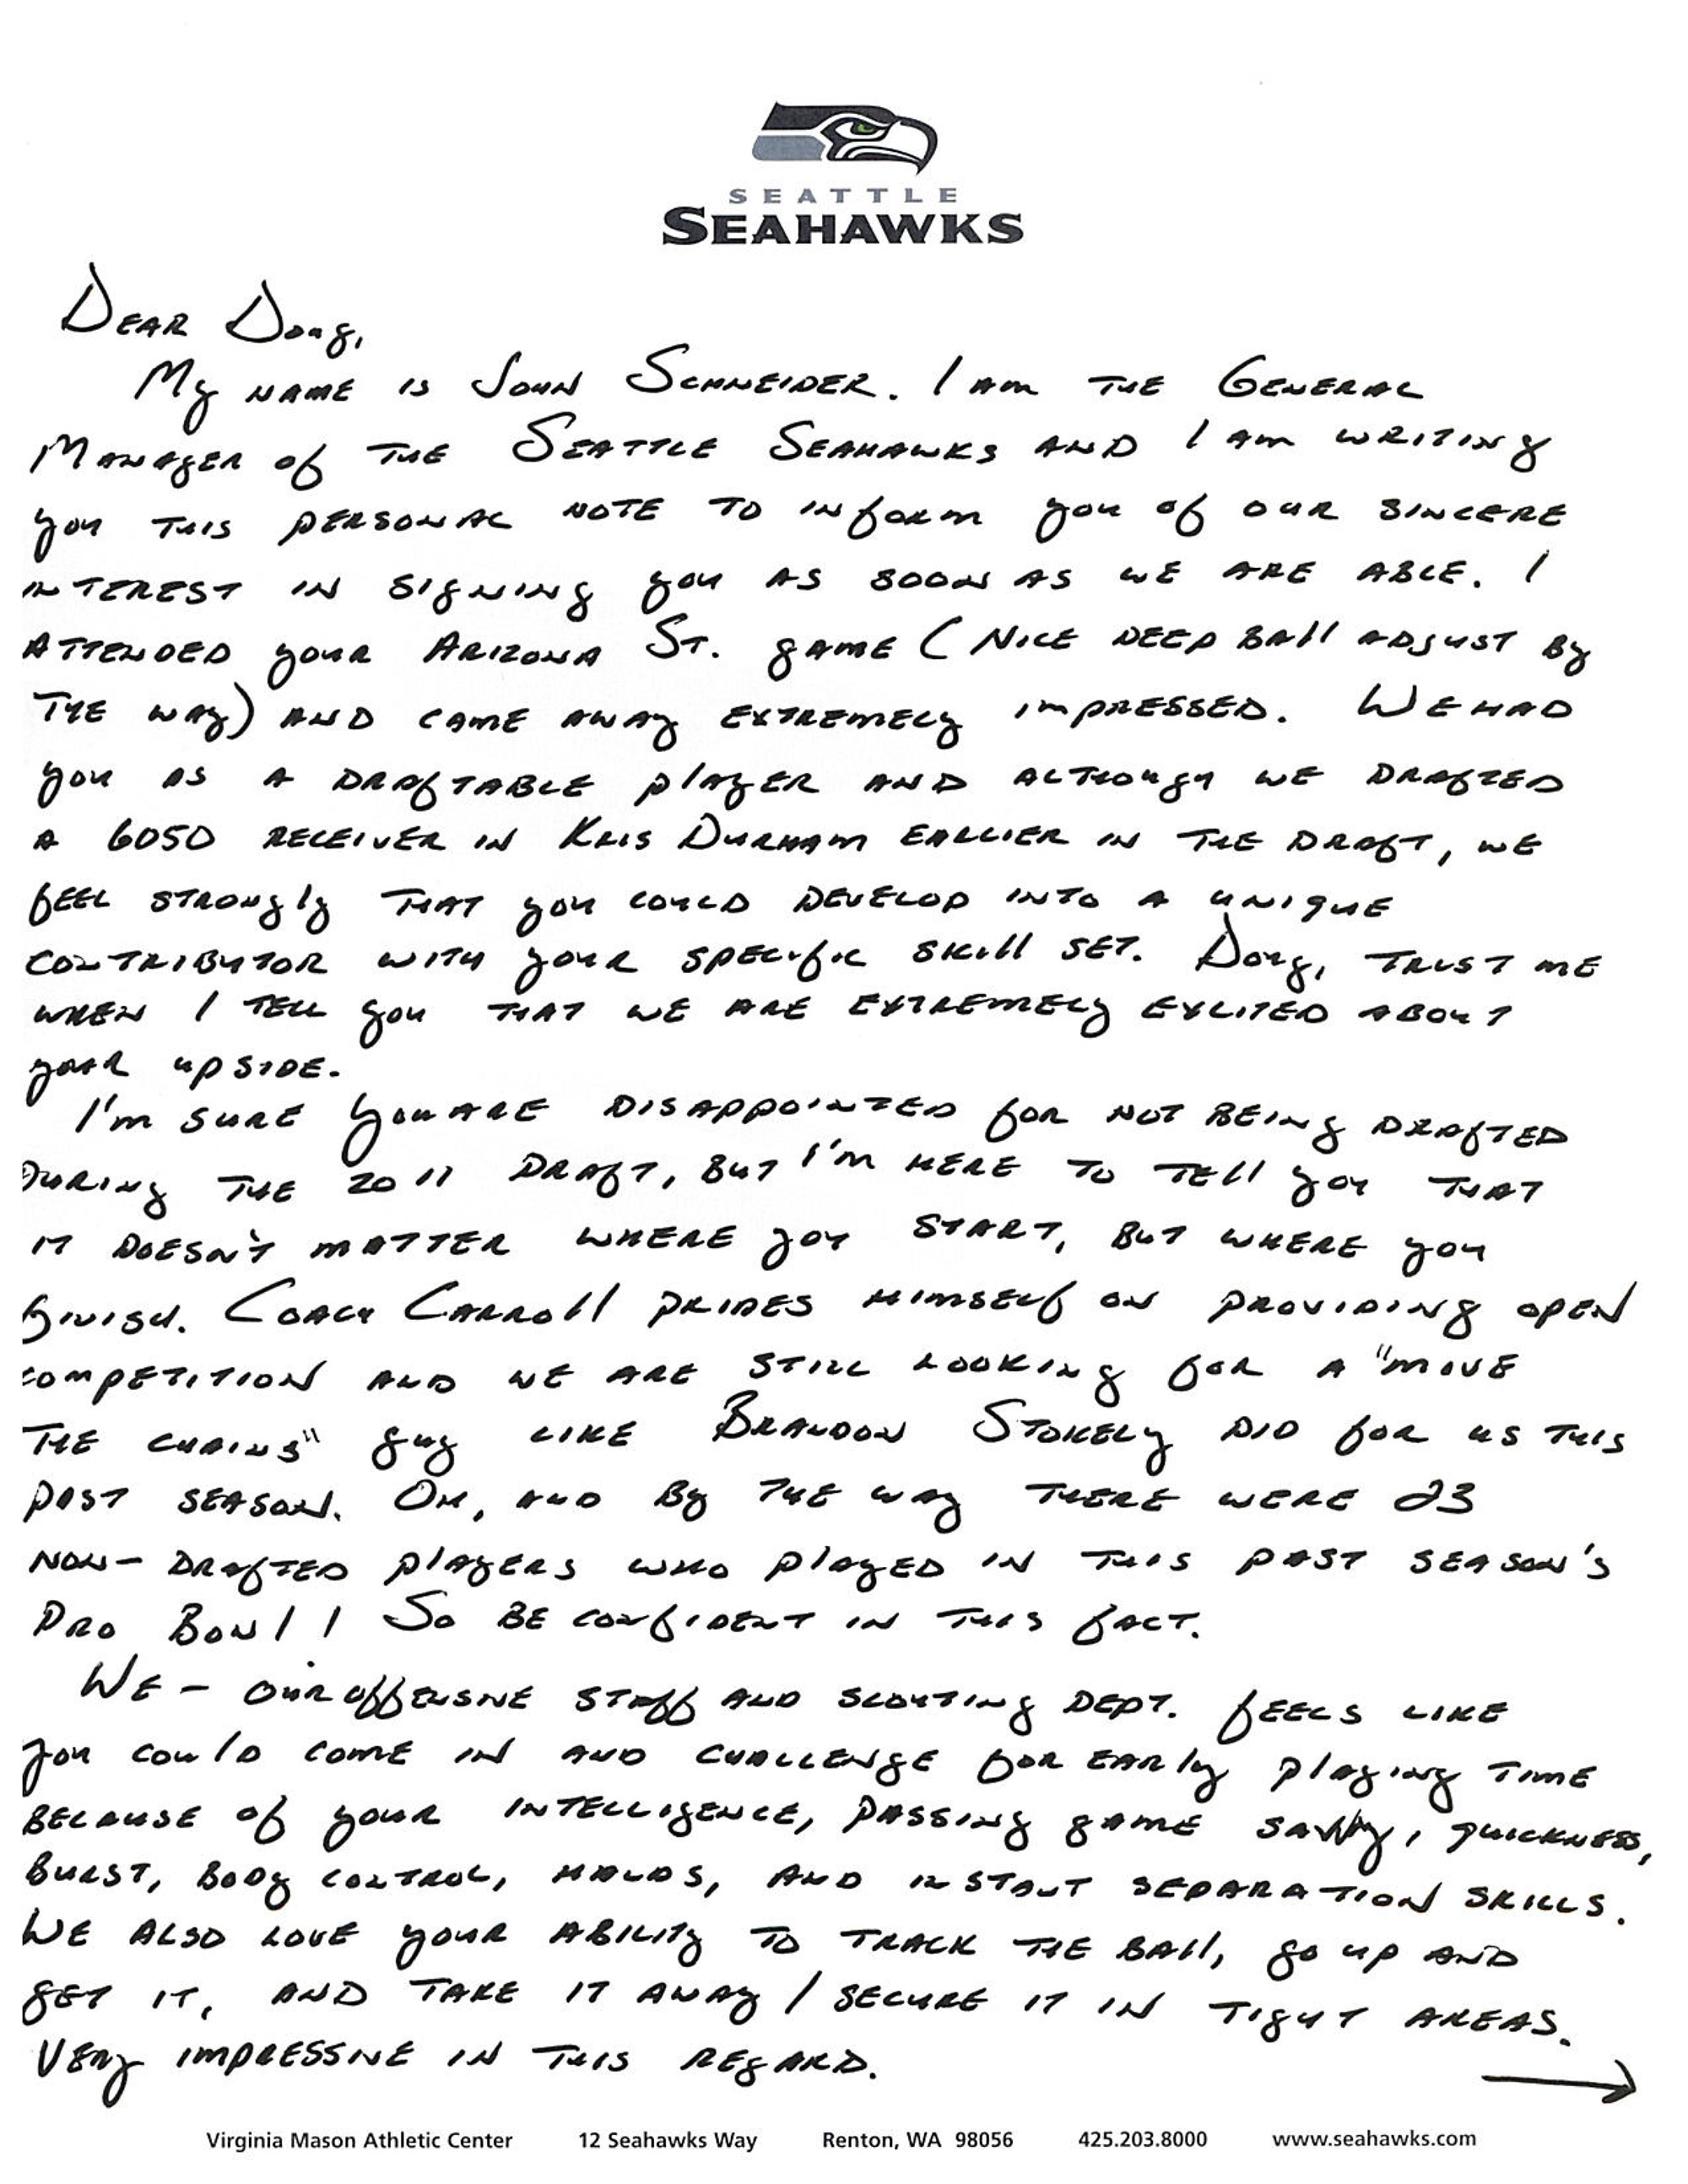 doug baldwin s letter from seahawks gm john schneider com after baldwin went undrafted in 2011 seahawks general manager john schneider sent baldwin the following handwritten note outlining seattle s philosophy